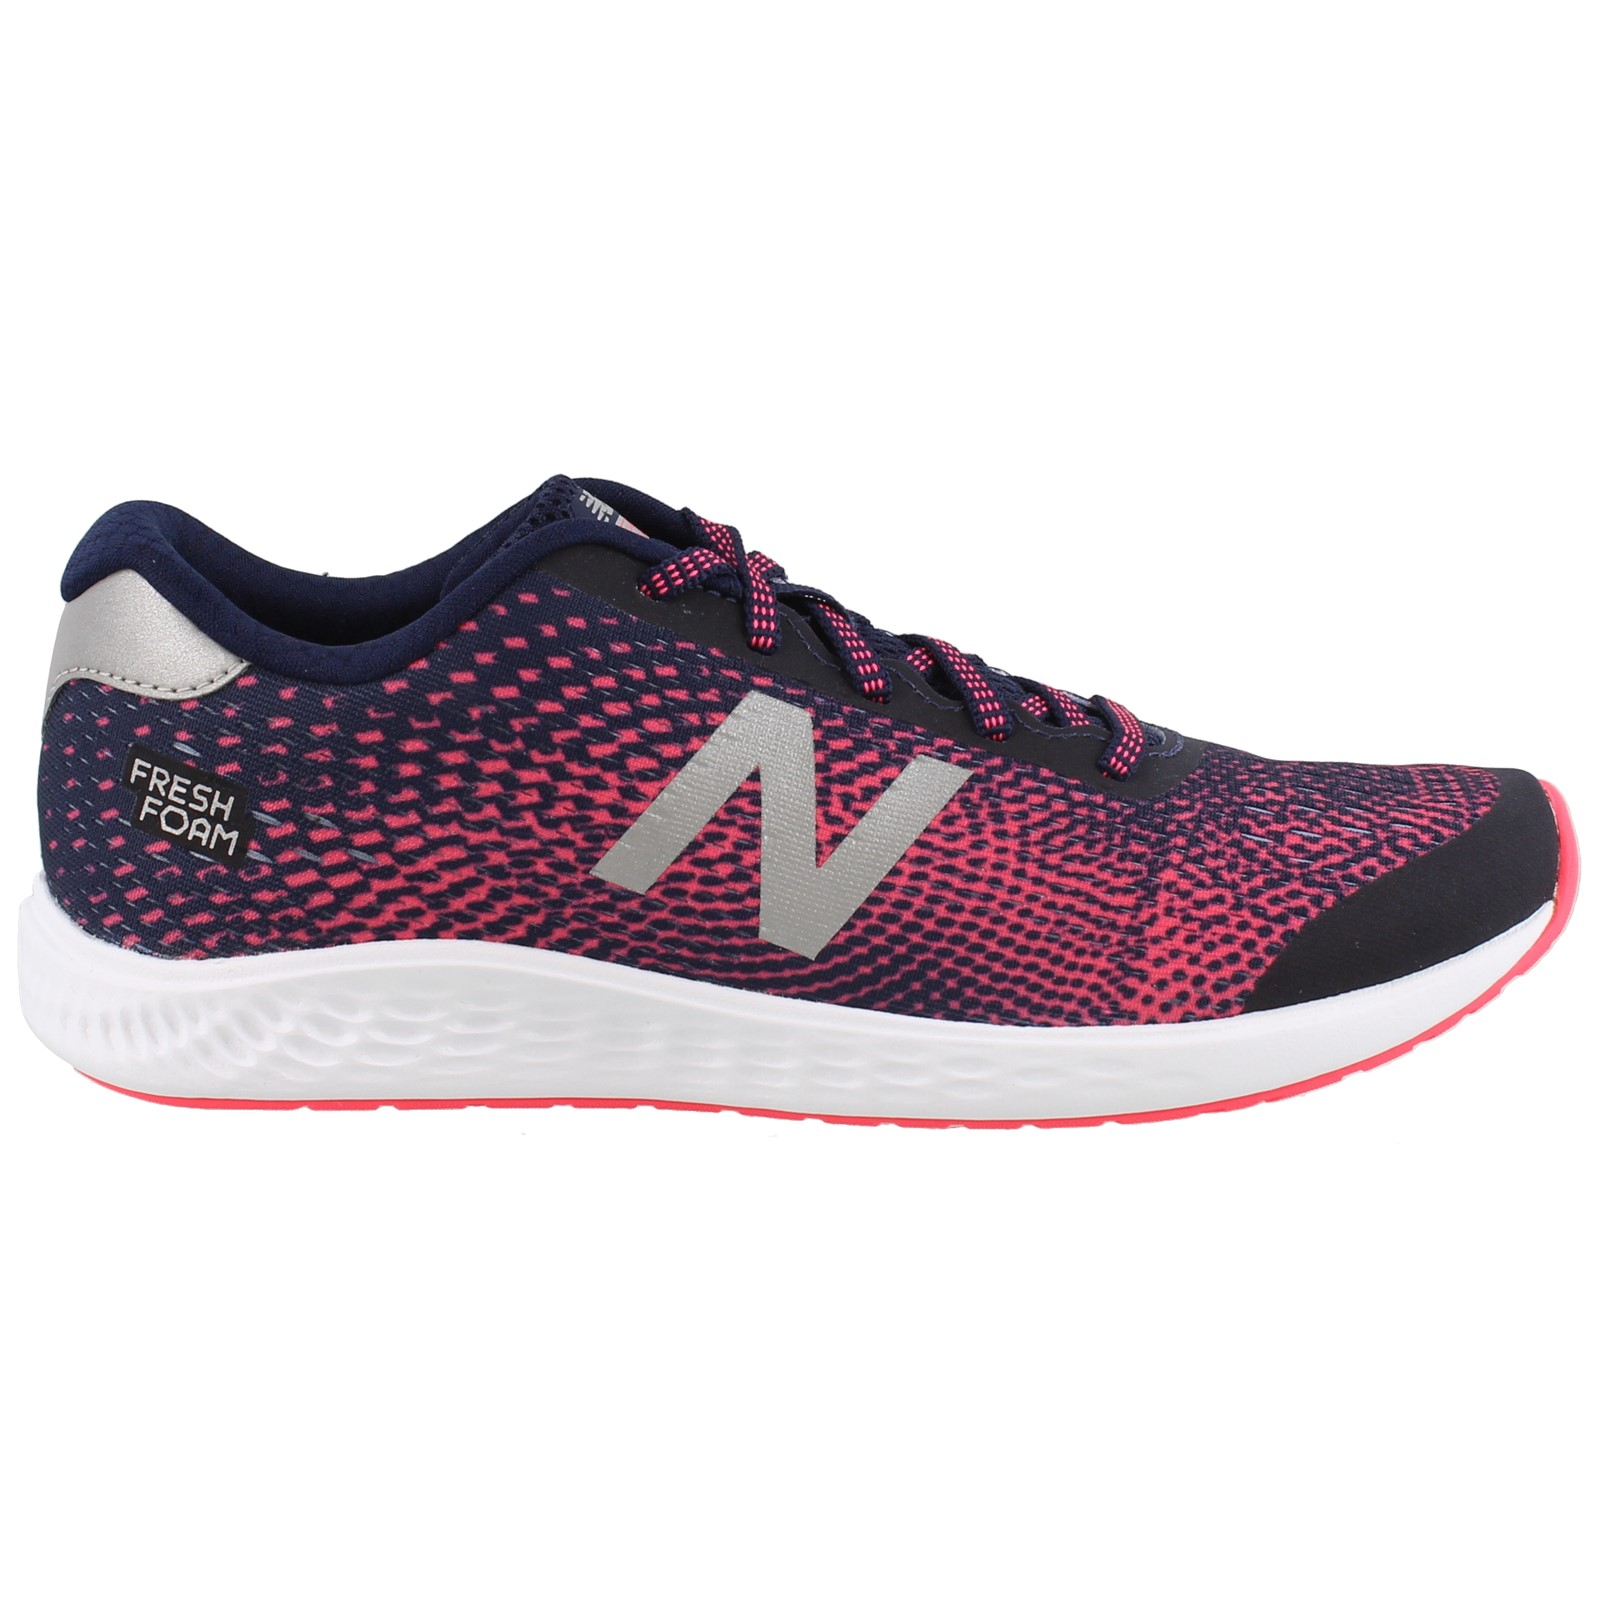 New Balance Girls' Shoes | Find Great Shoes Deals Shopping